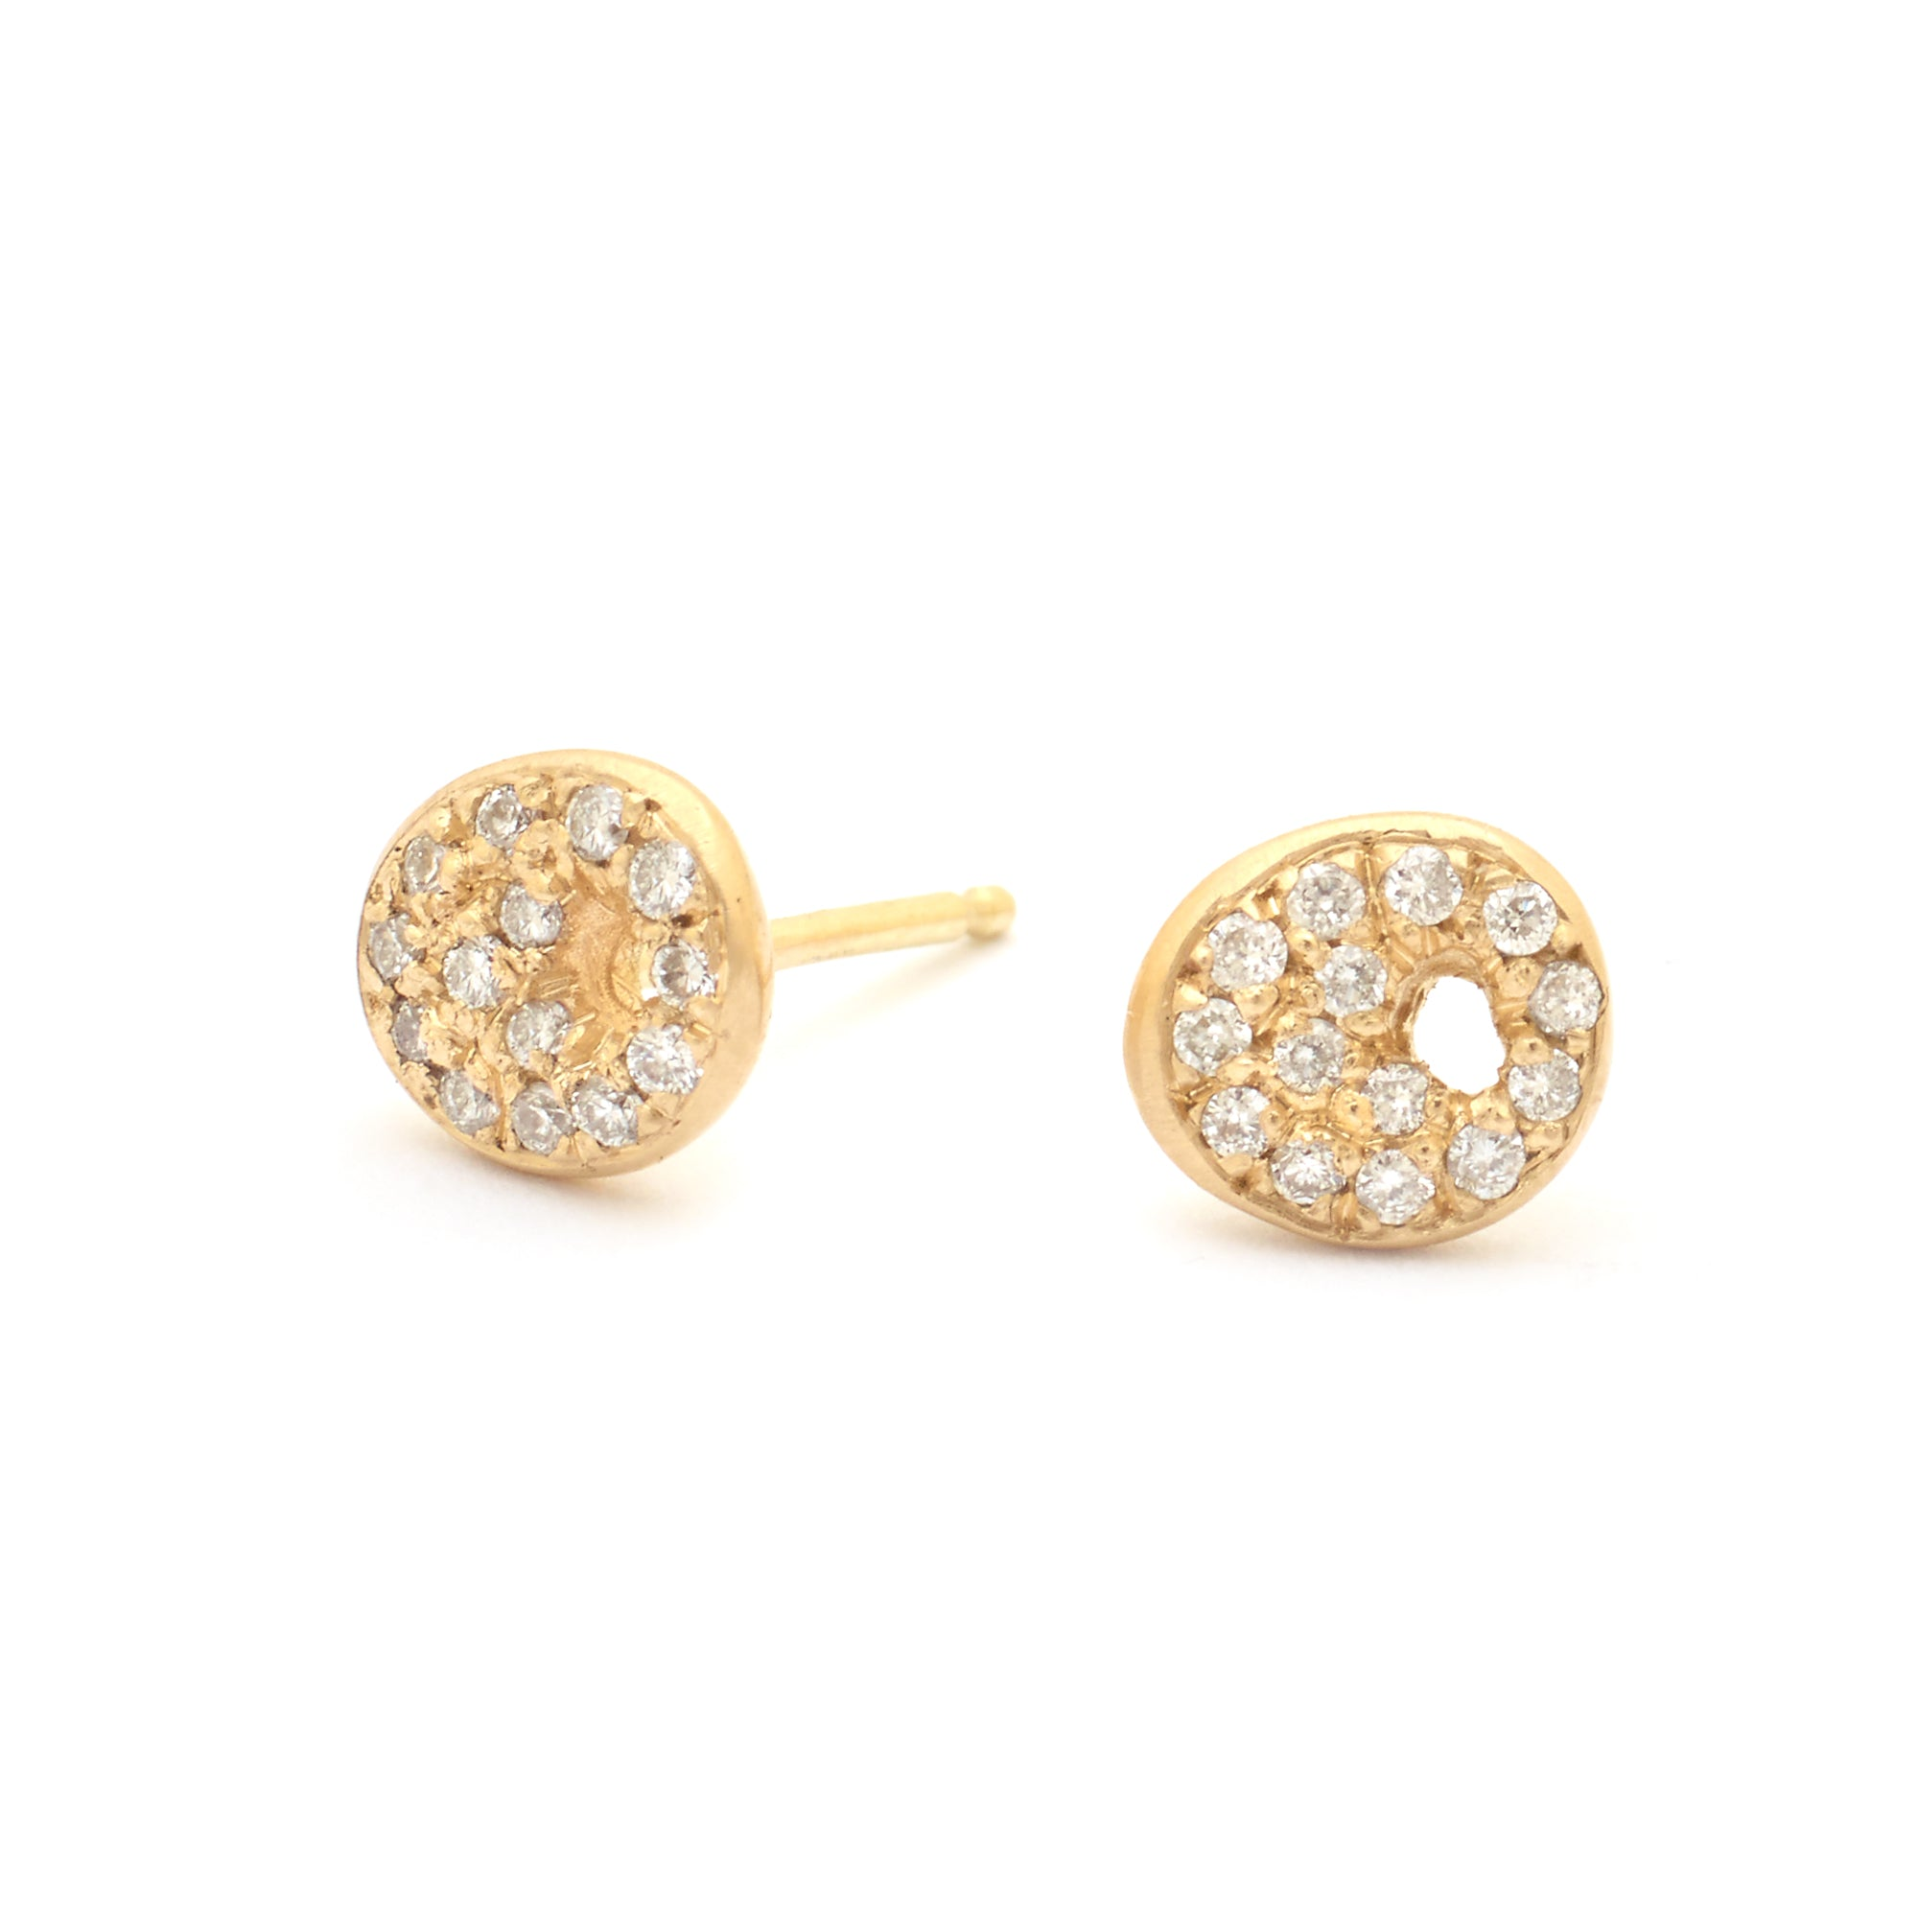 Pave Sequin Gold Stud Earrings - Johanna Brierley Jewellery Design